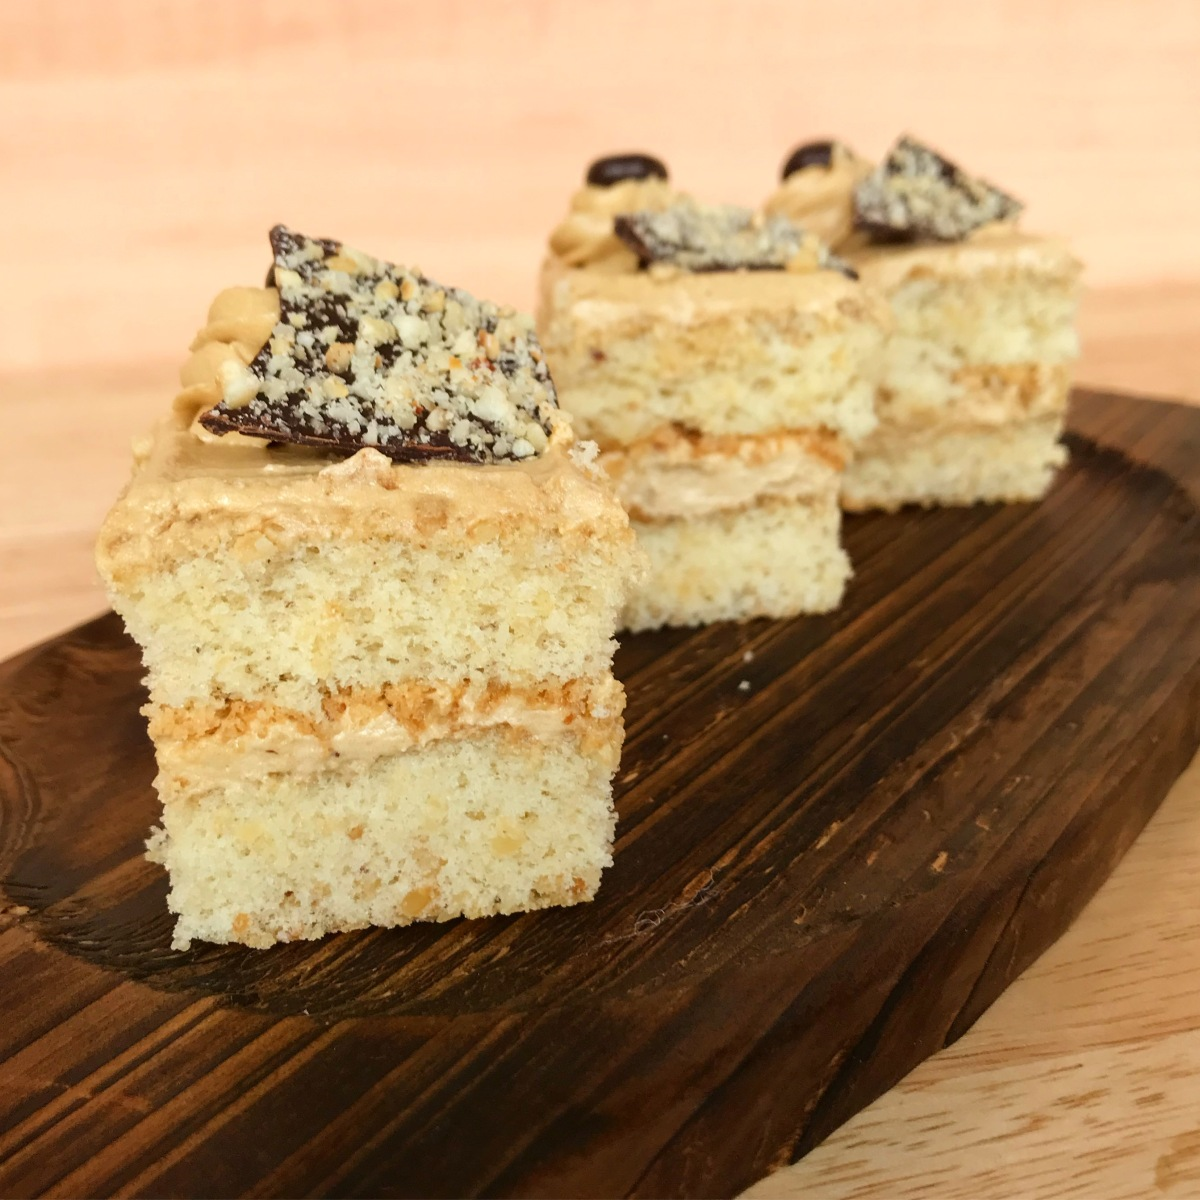 Hazelnut and Coffee Traybake